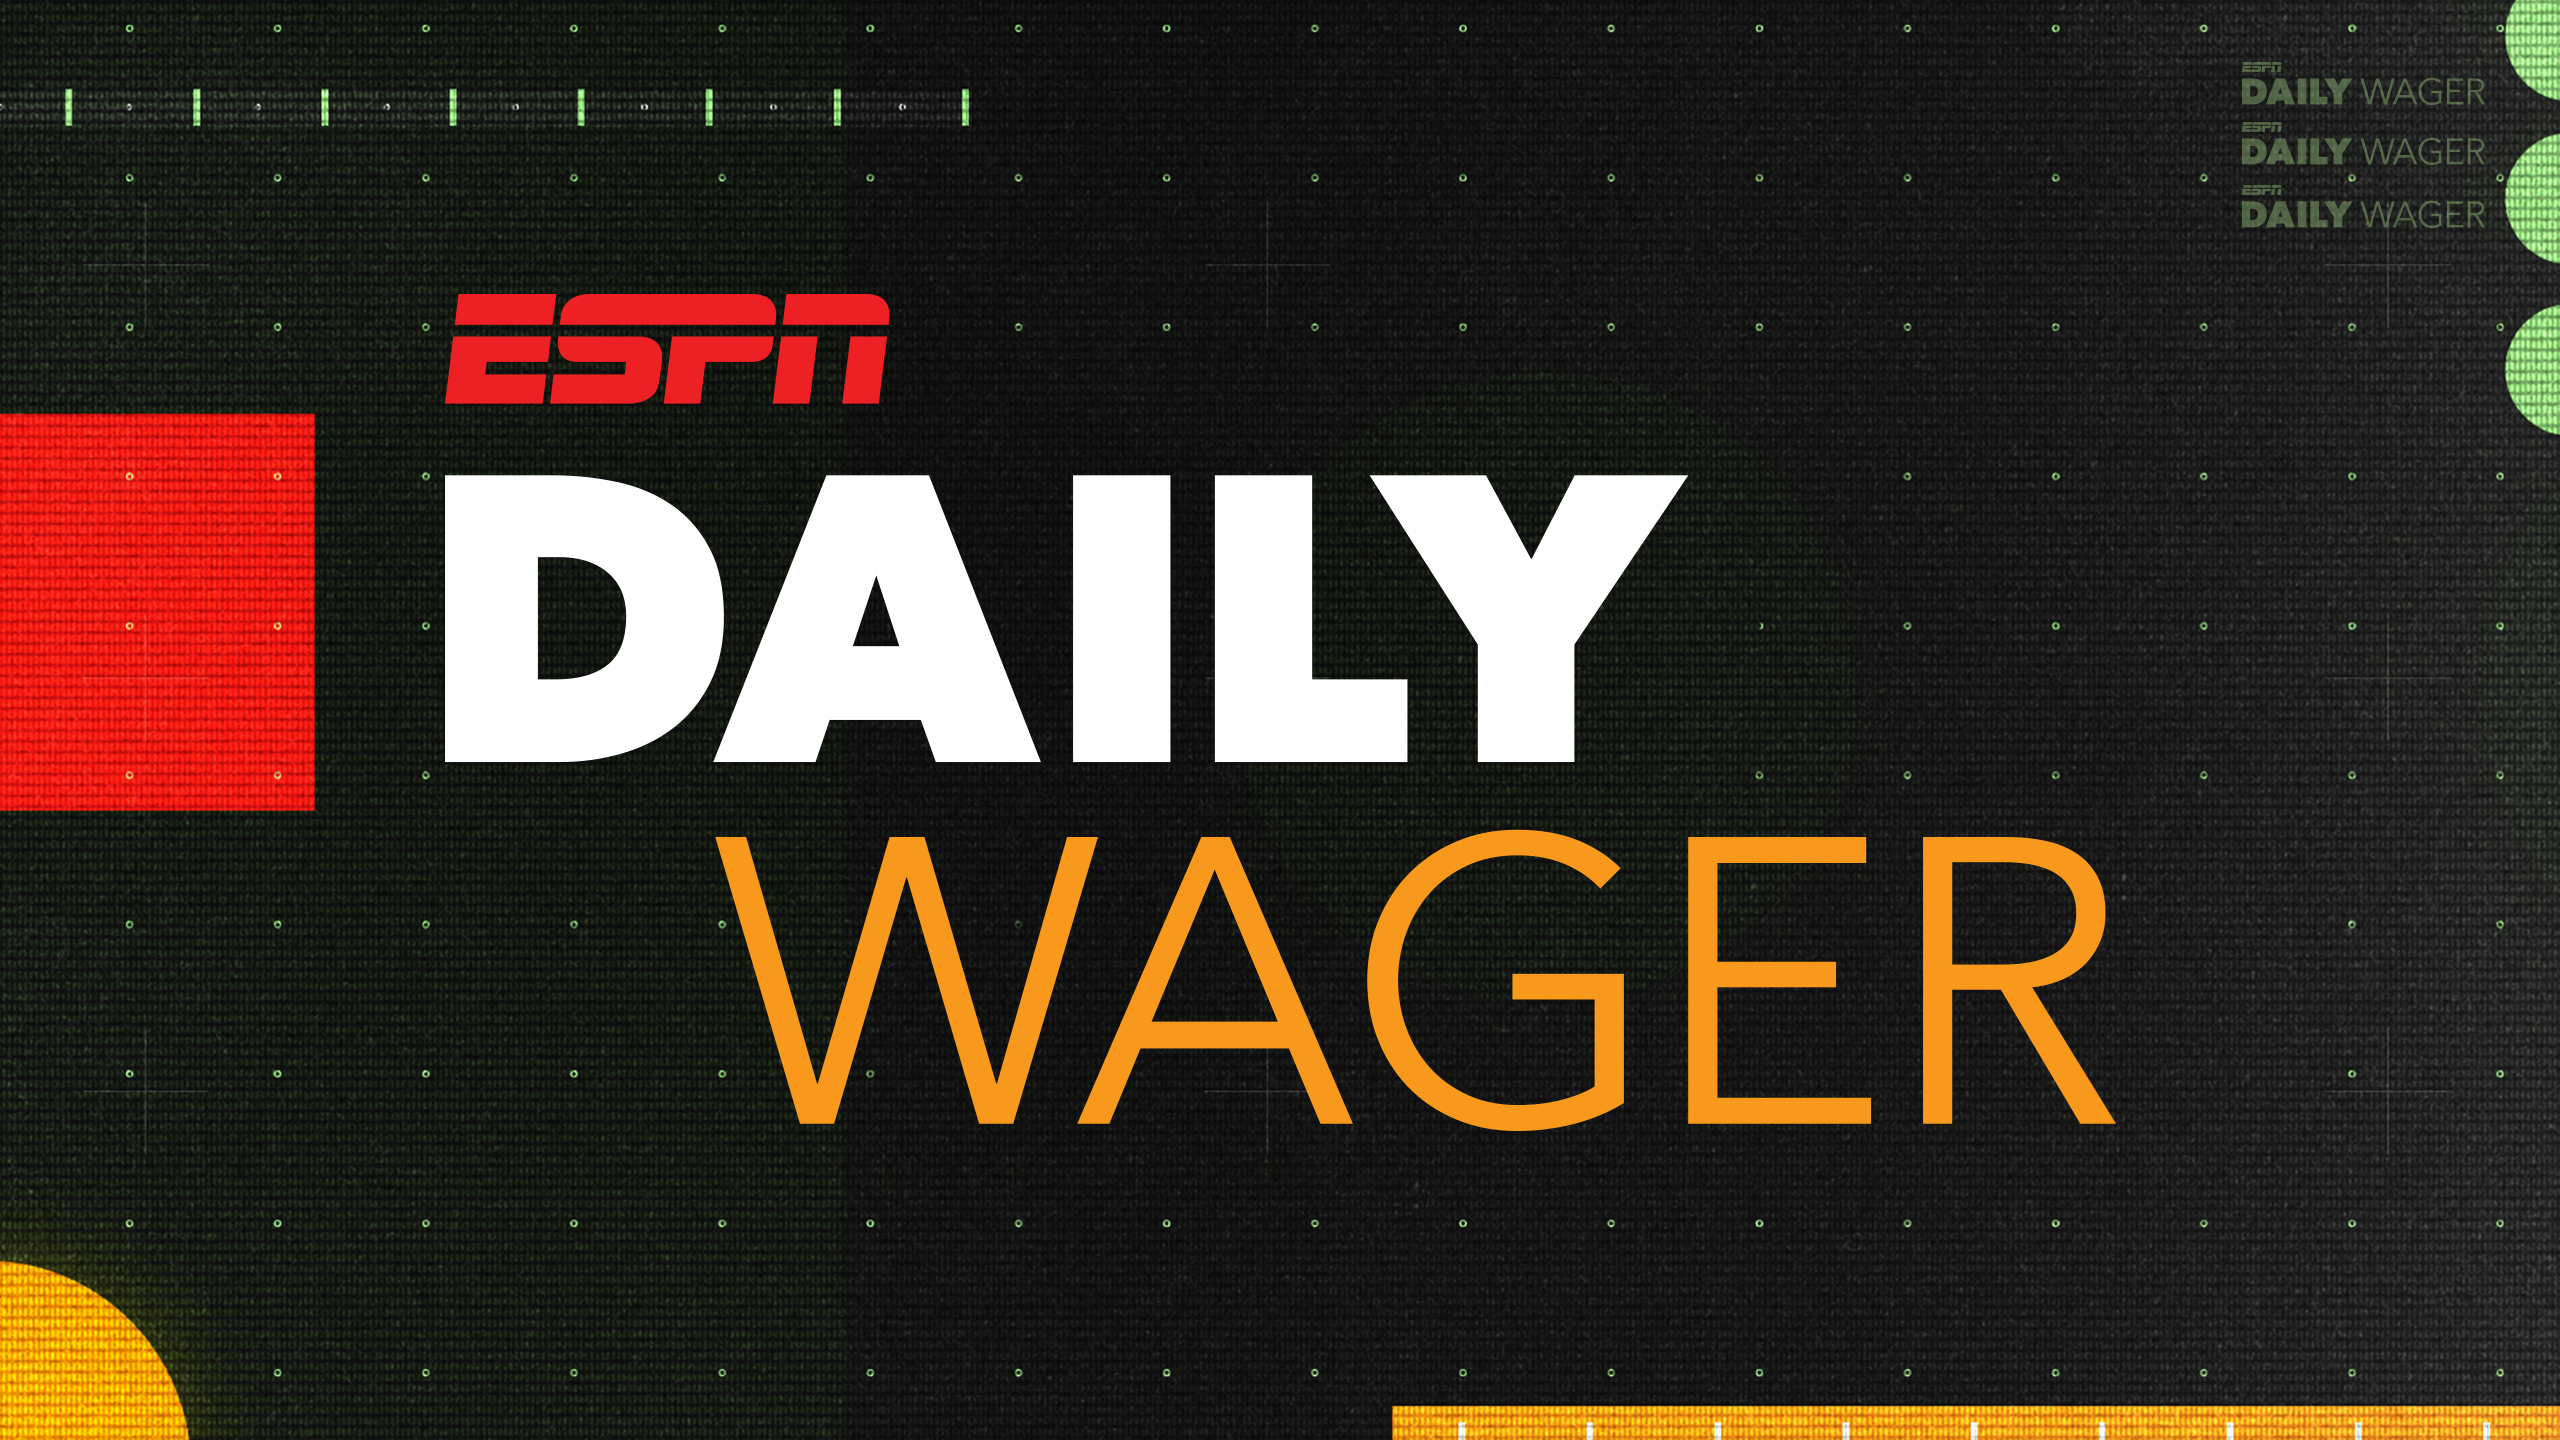 Wed, 4/17 - Daily Wager